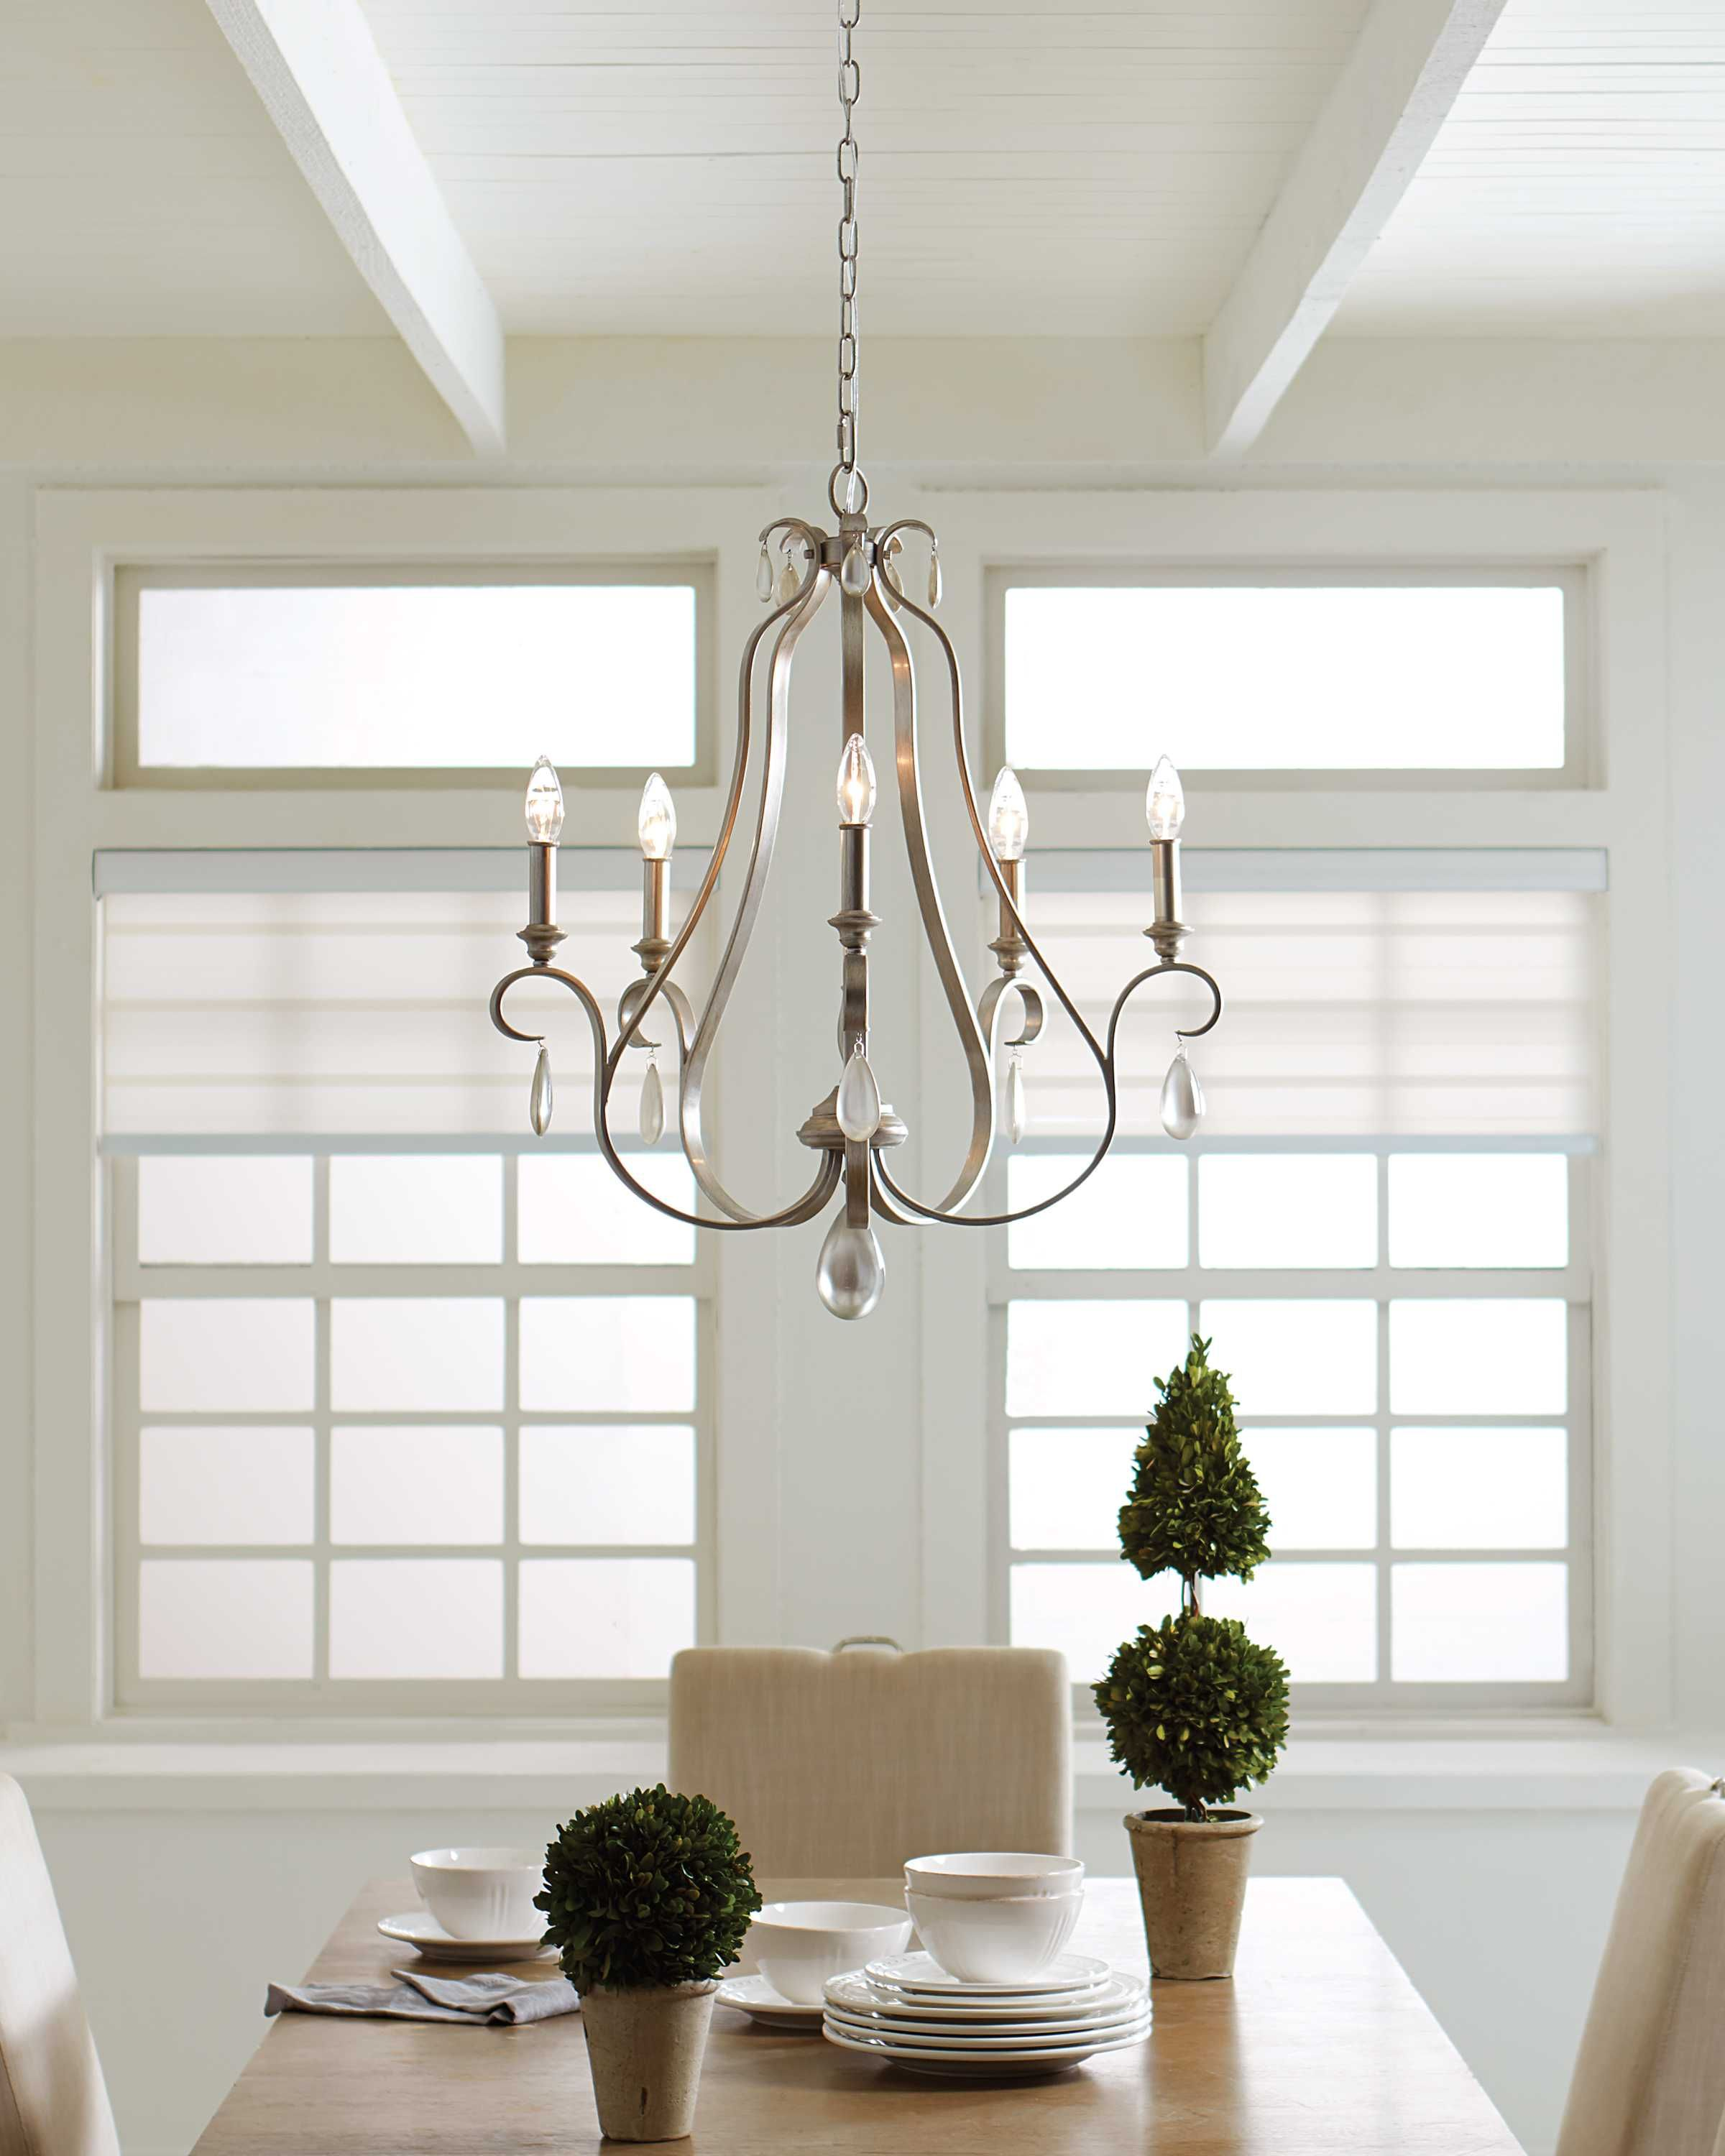 Feiss Lighting Traditional Dining, Traditional Chandeliers For Dining Rooms